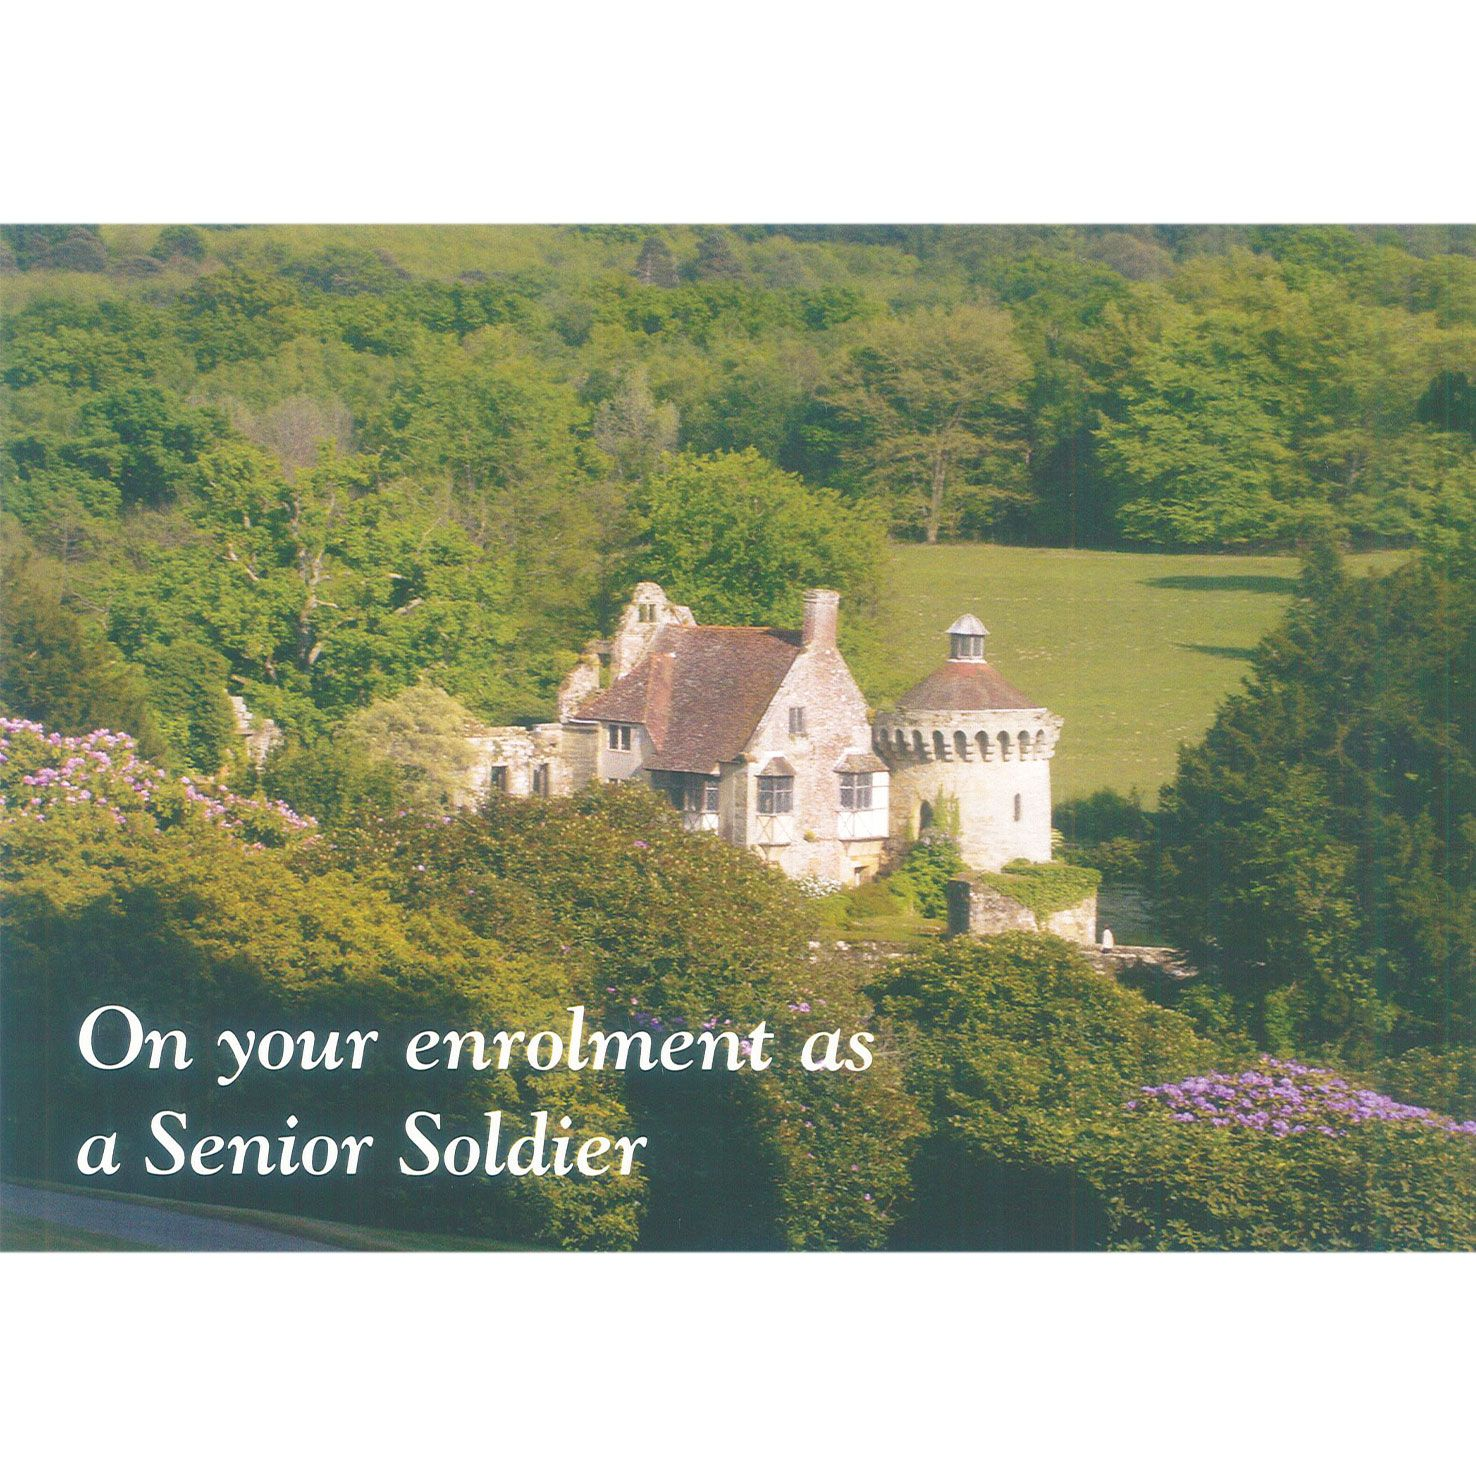 Senior Soldier Card - House